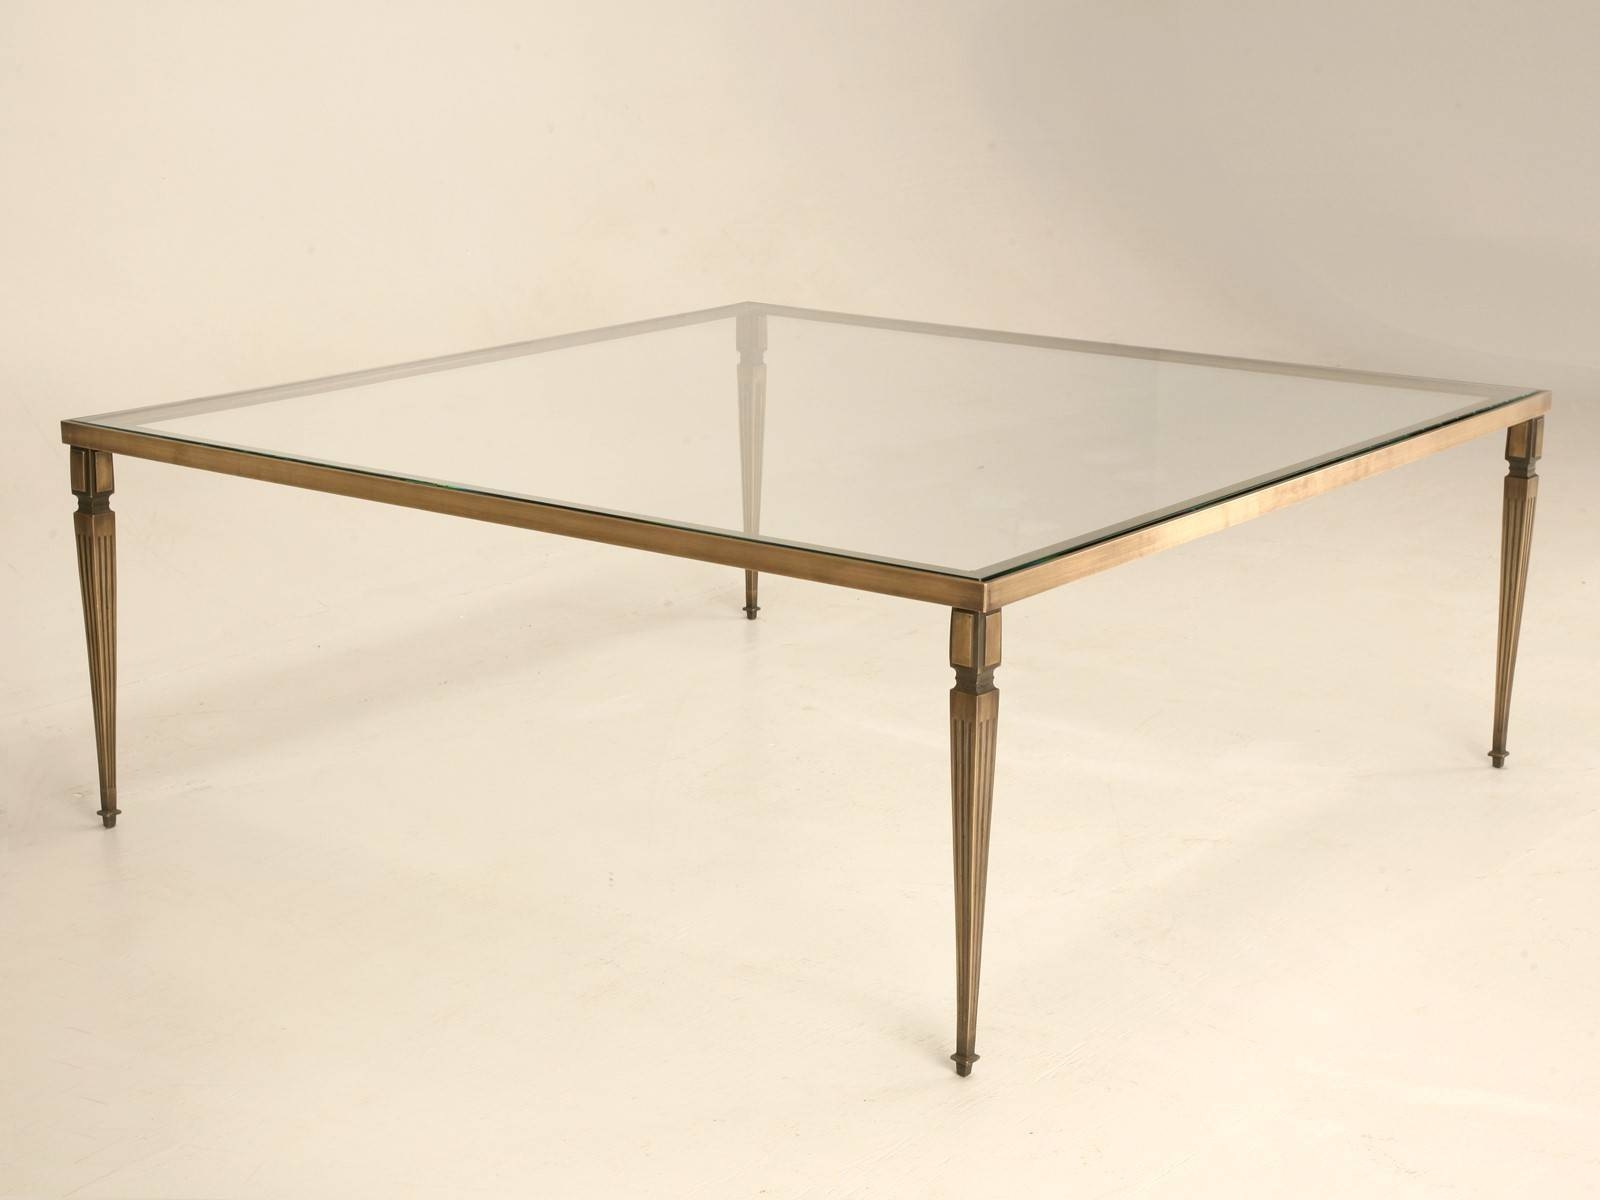 Coffee Table: Charming Bronze Coffee Table Designs Antique Bronze inside Large Square Glass Coffee Tables (Image 11 of 30)